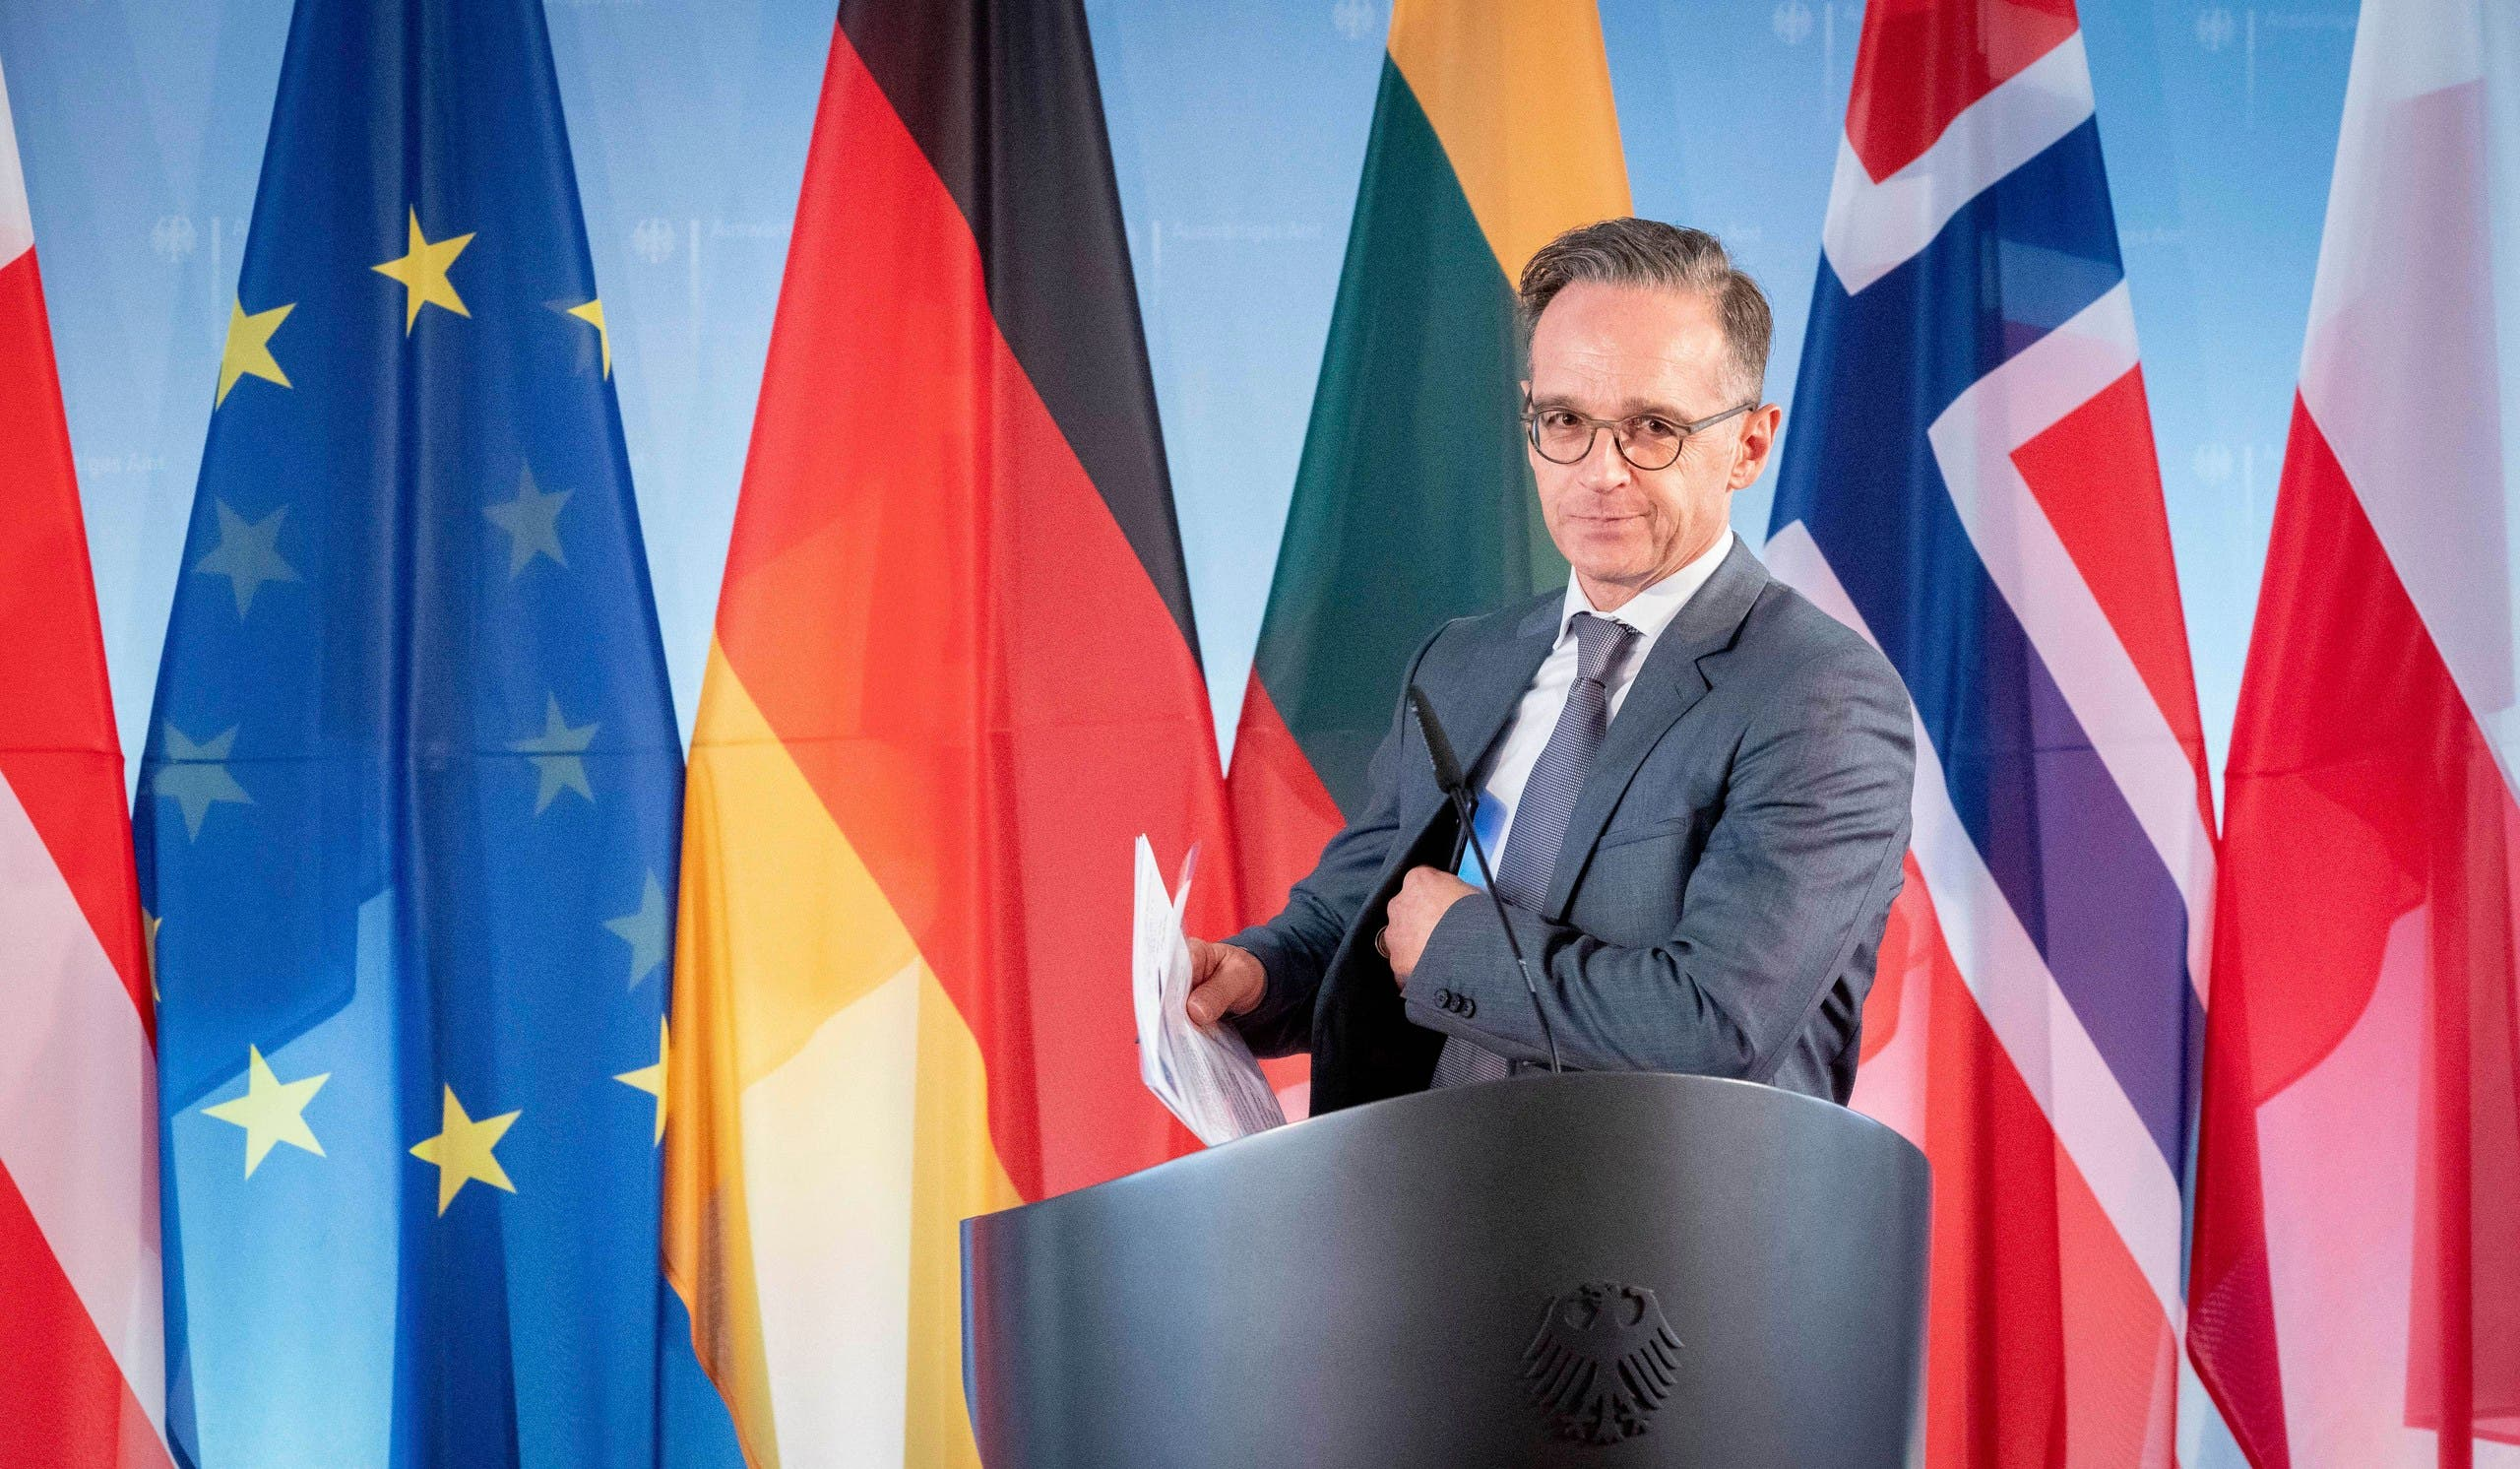 German Foreign Minister Heiko Maas briefs the media prior to the Foreign Ministers' Meeting of the Council of the Baltic Sea States at the foreign ministry in Berlin, Germany, on Tuesday, May 19, 2020. (AP)